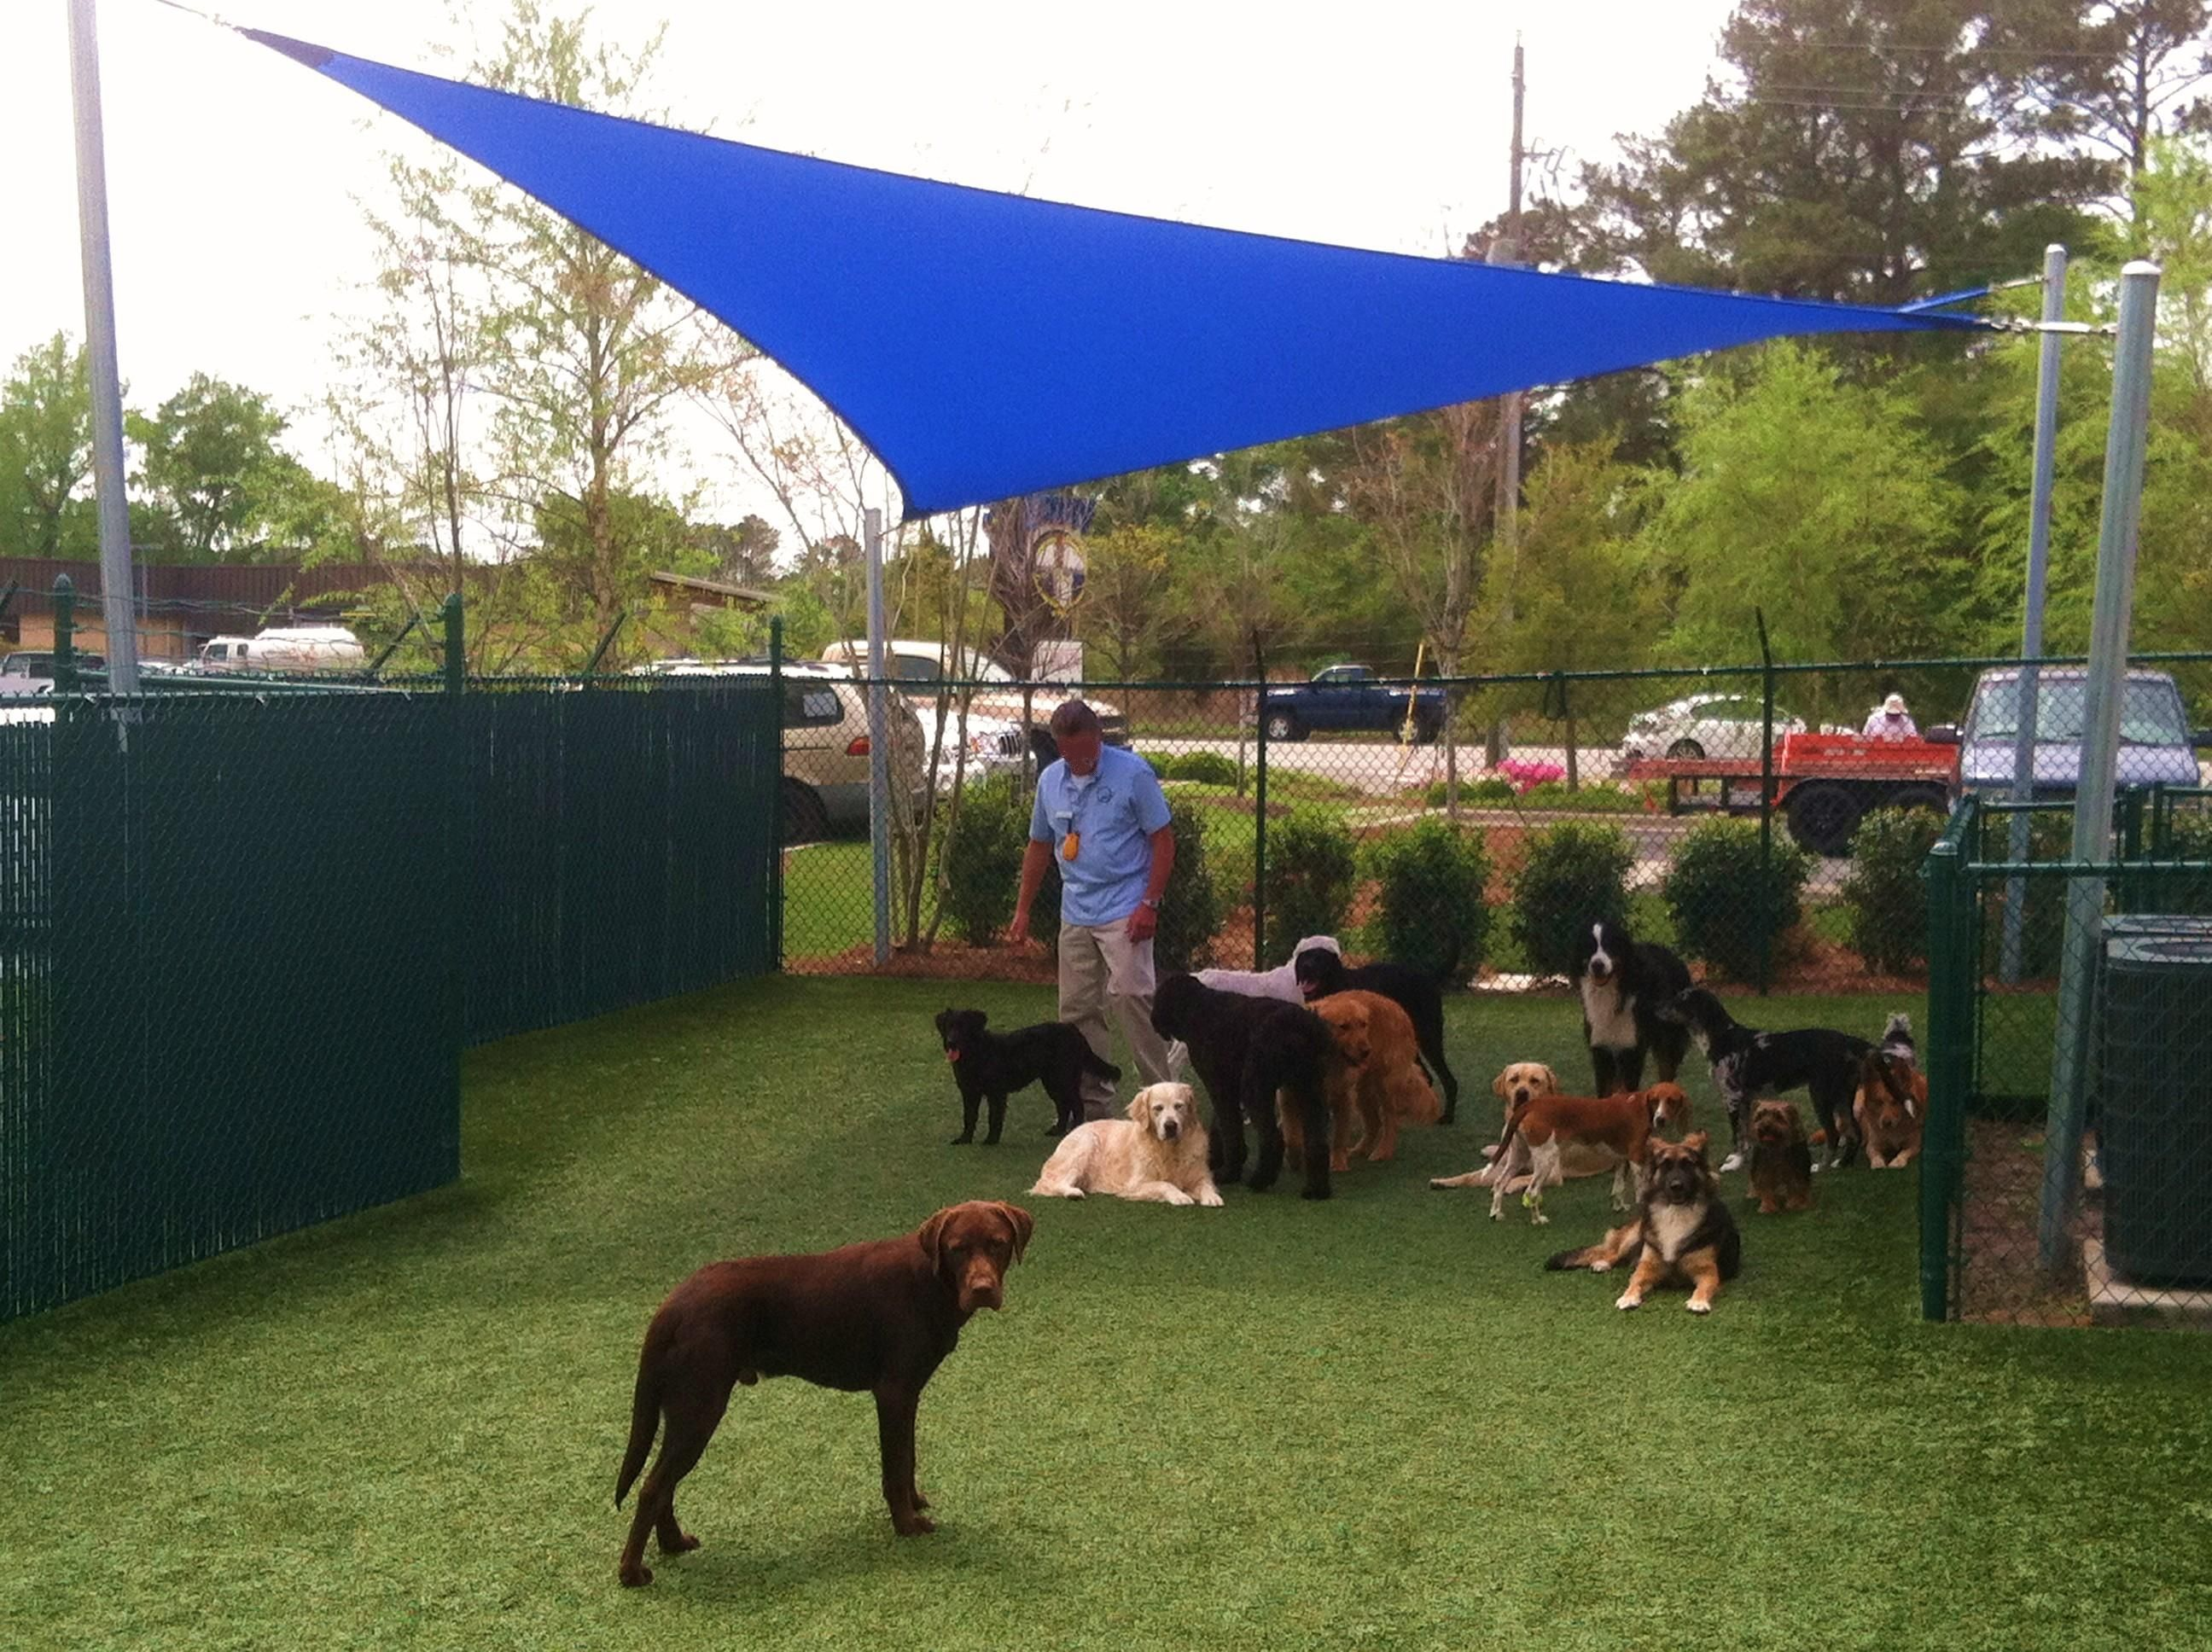 Dogs Love Shade A Kiwishade At A Doggie Day Care In Wilmington